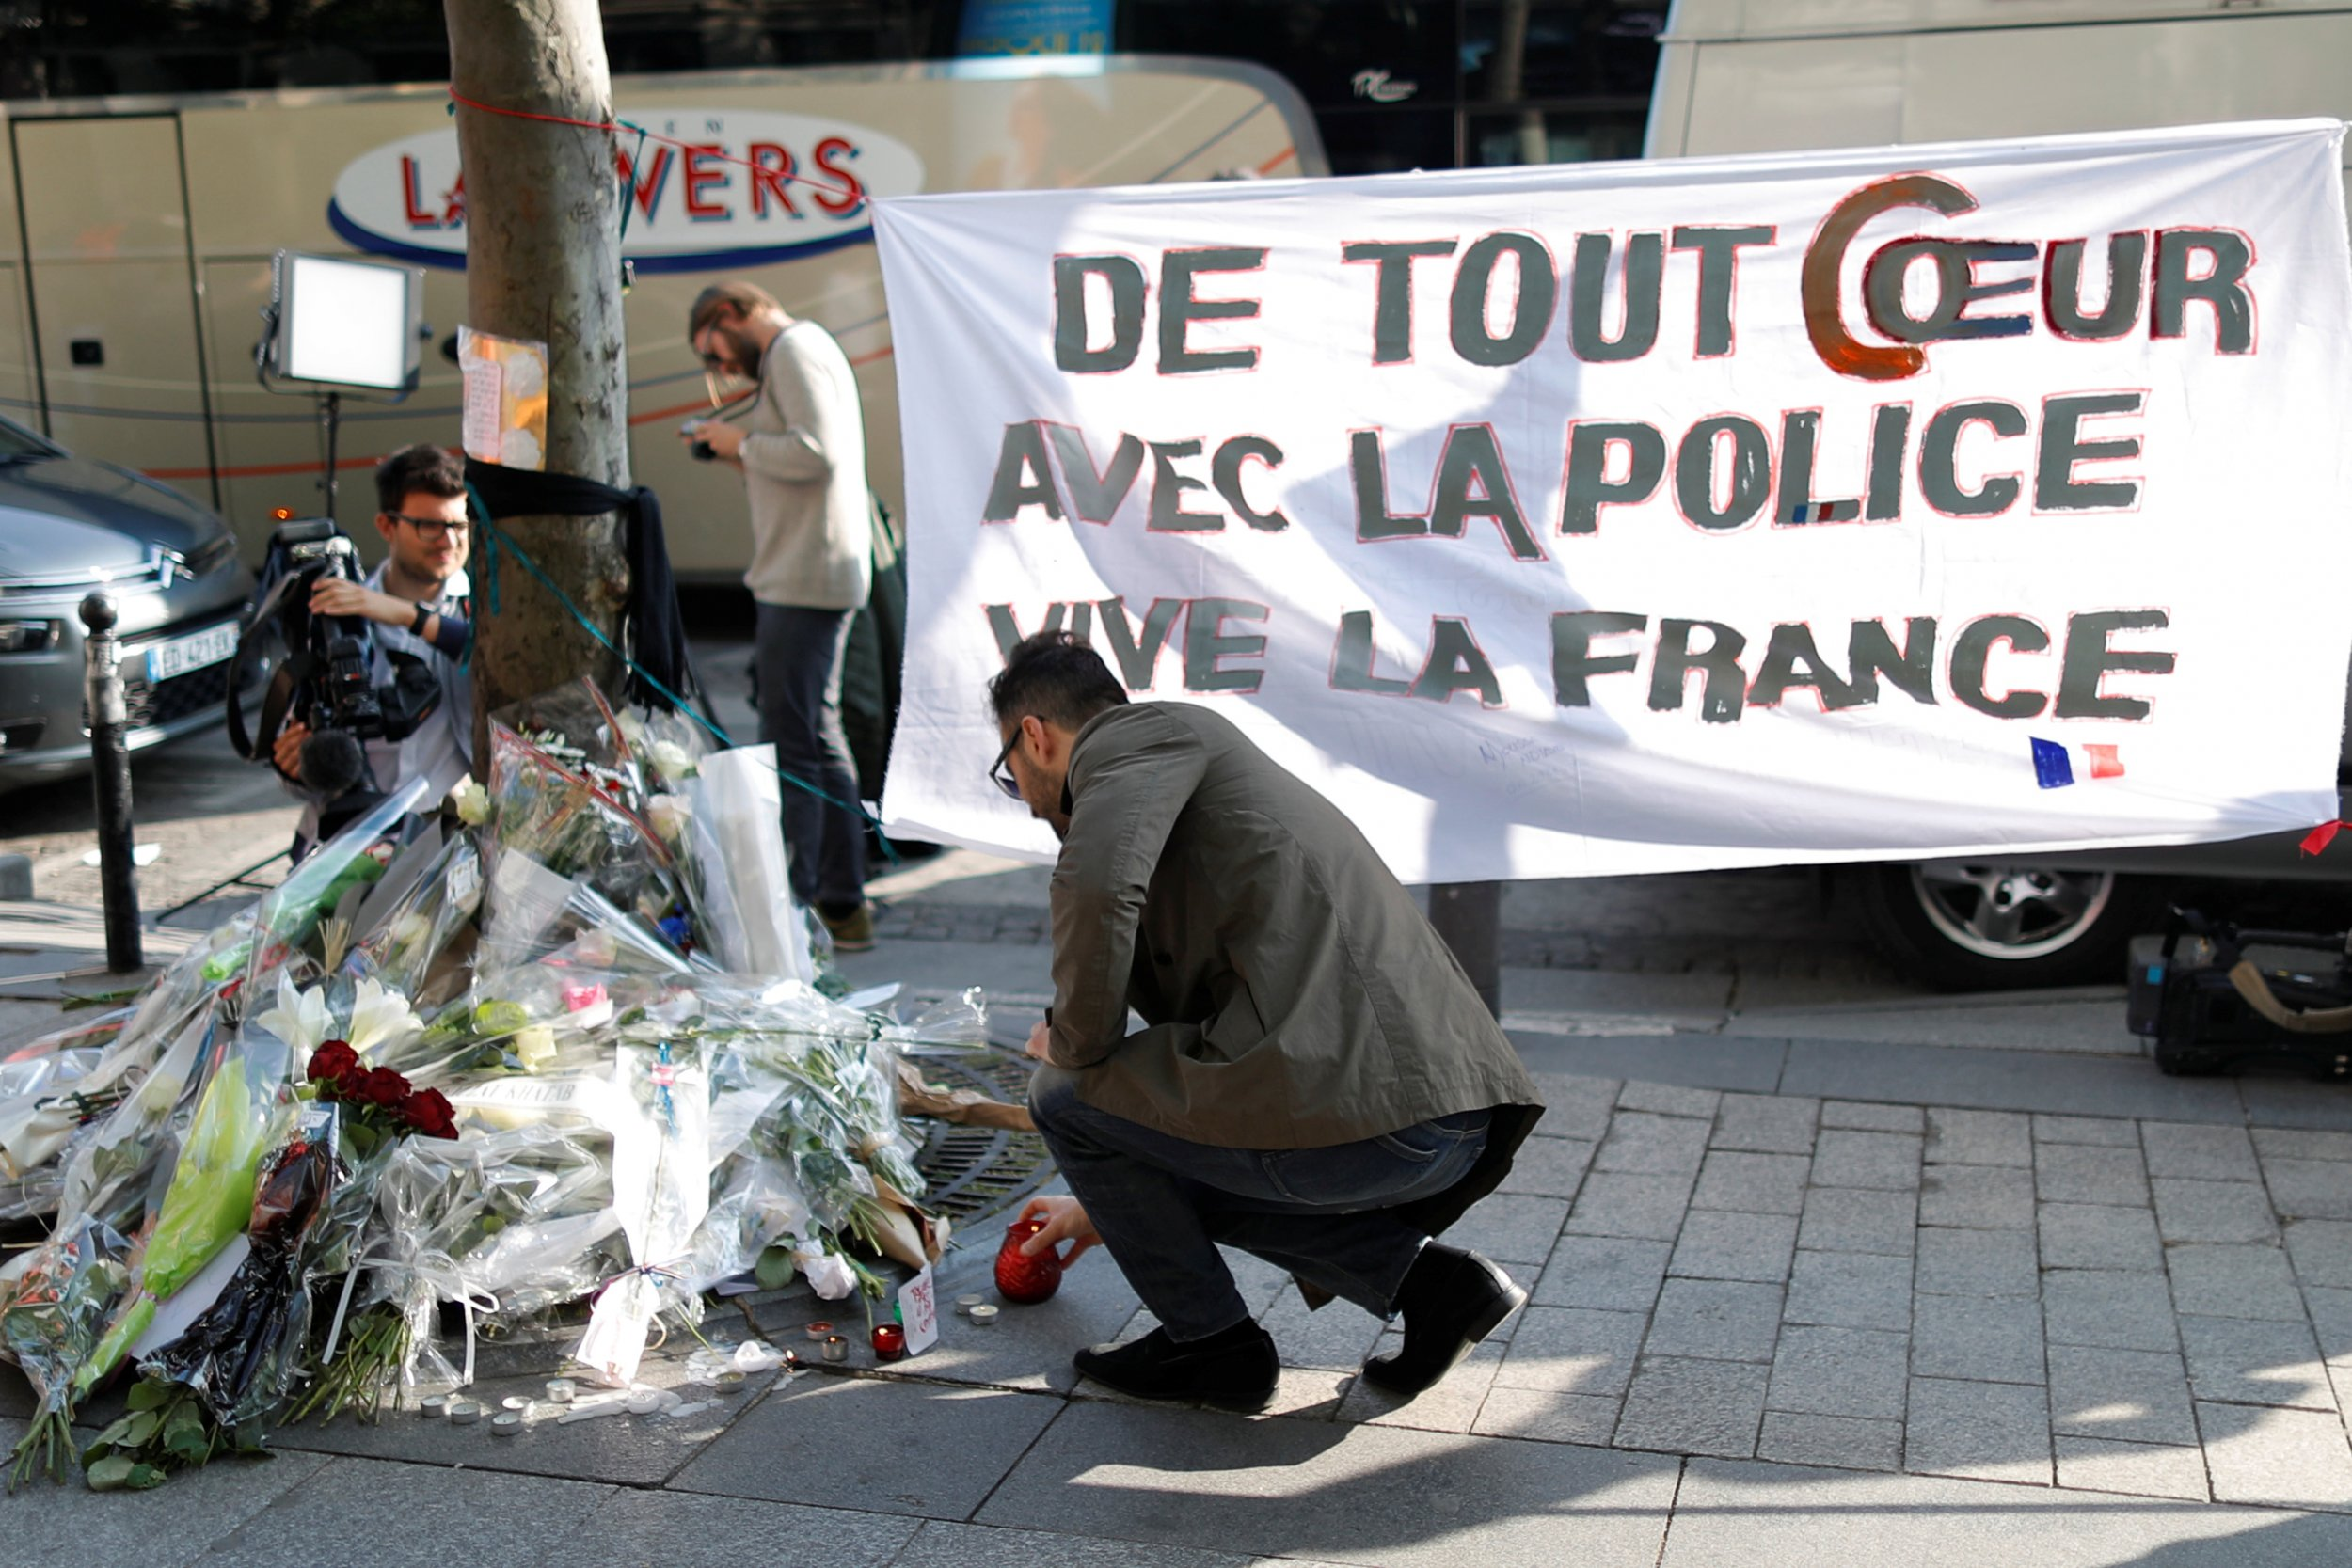 Memorial for the policeman shot on the Champs-Élysées